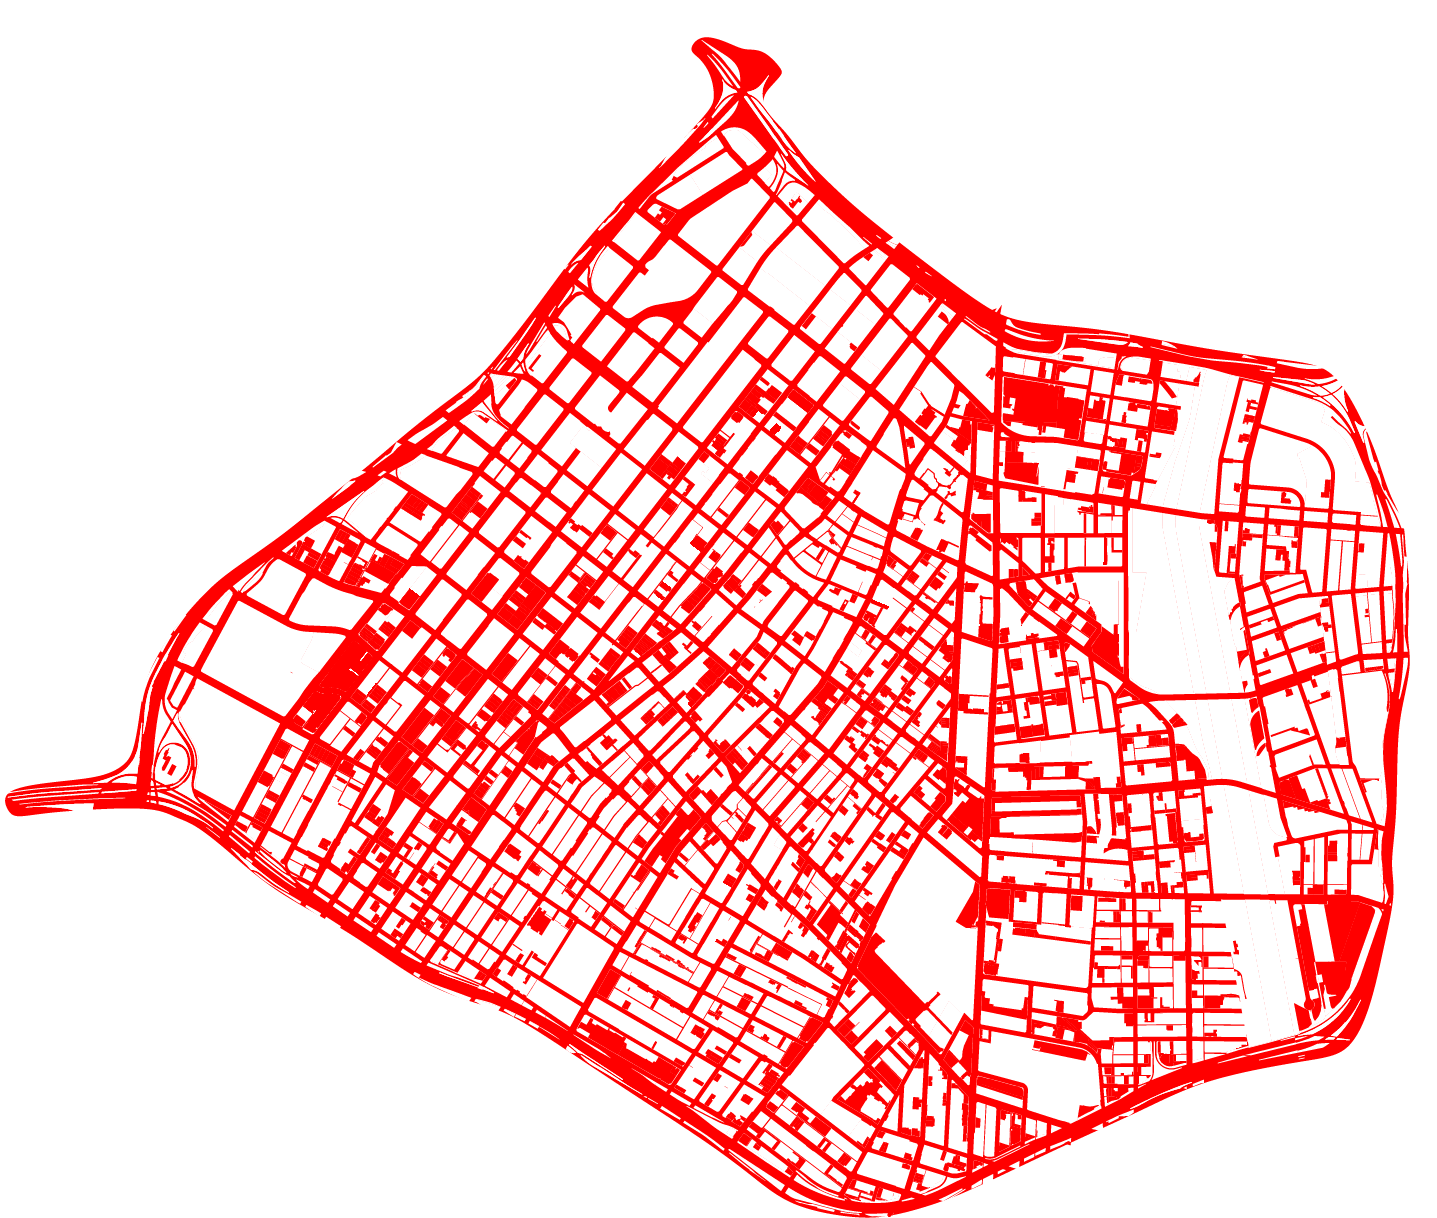 39% of DTLA's land area is used for streets and surface parking.